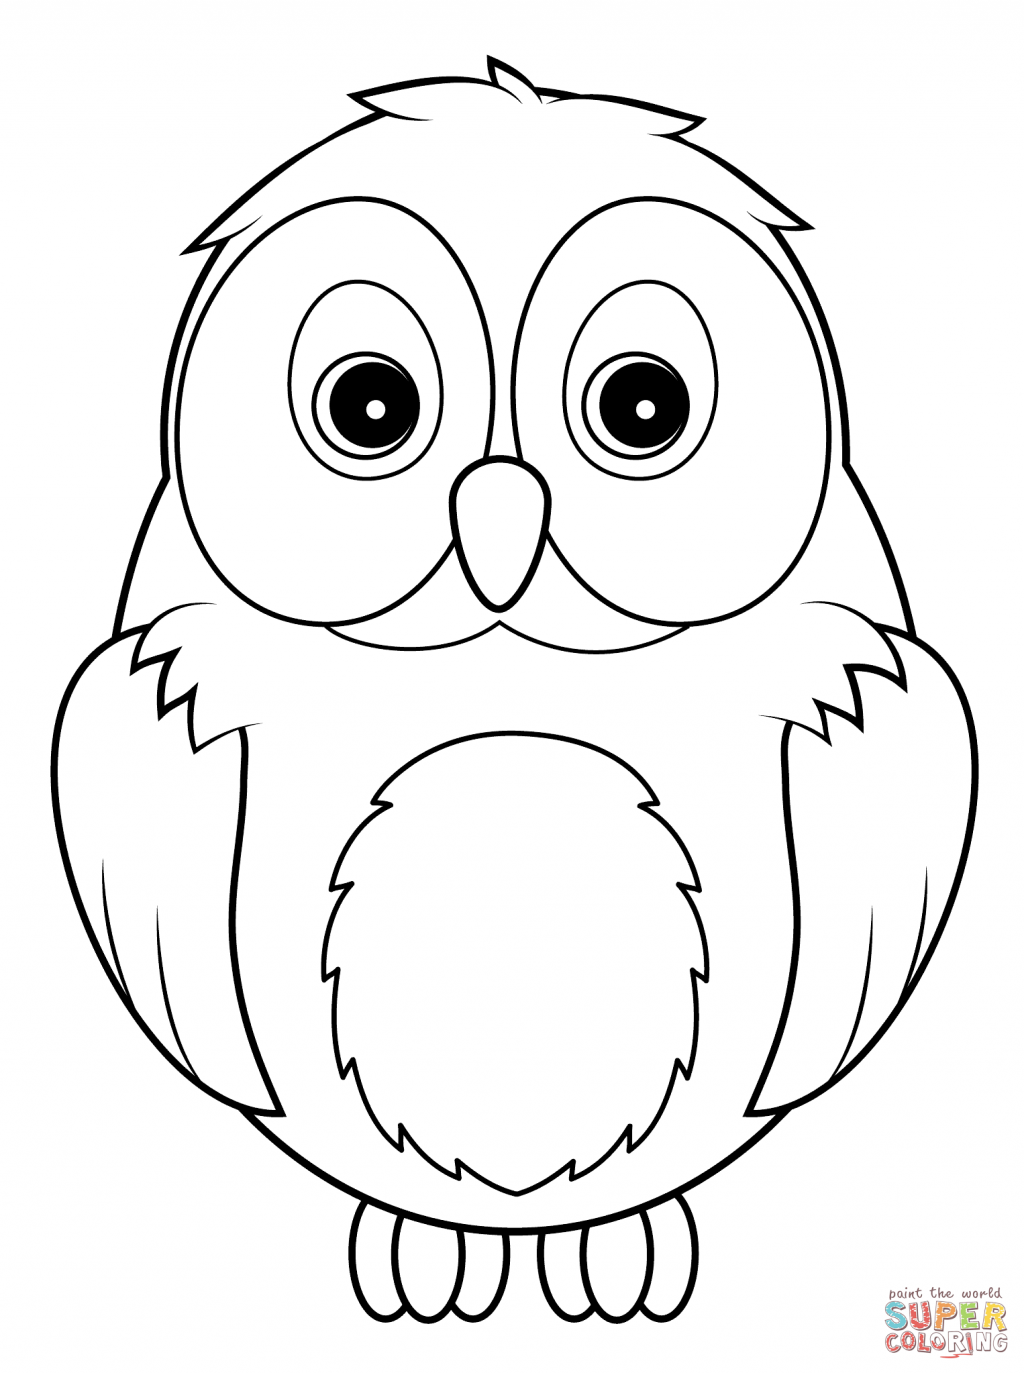 Coloring Page Coloring Page Printable Owl Pages Cute Printable Owl Coloring Pages Tutkimusmatka Owls Drawing Animal Coloring Pages Owl Coloring Pages